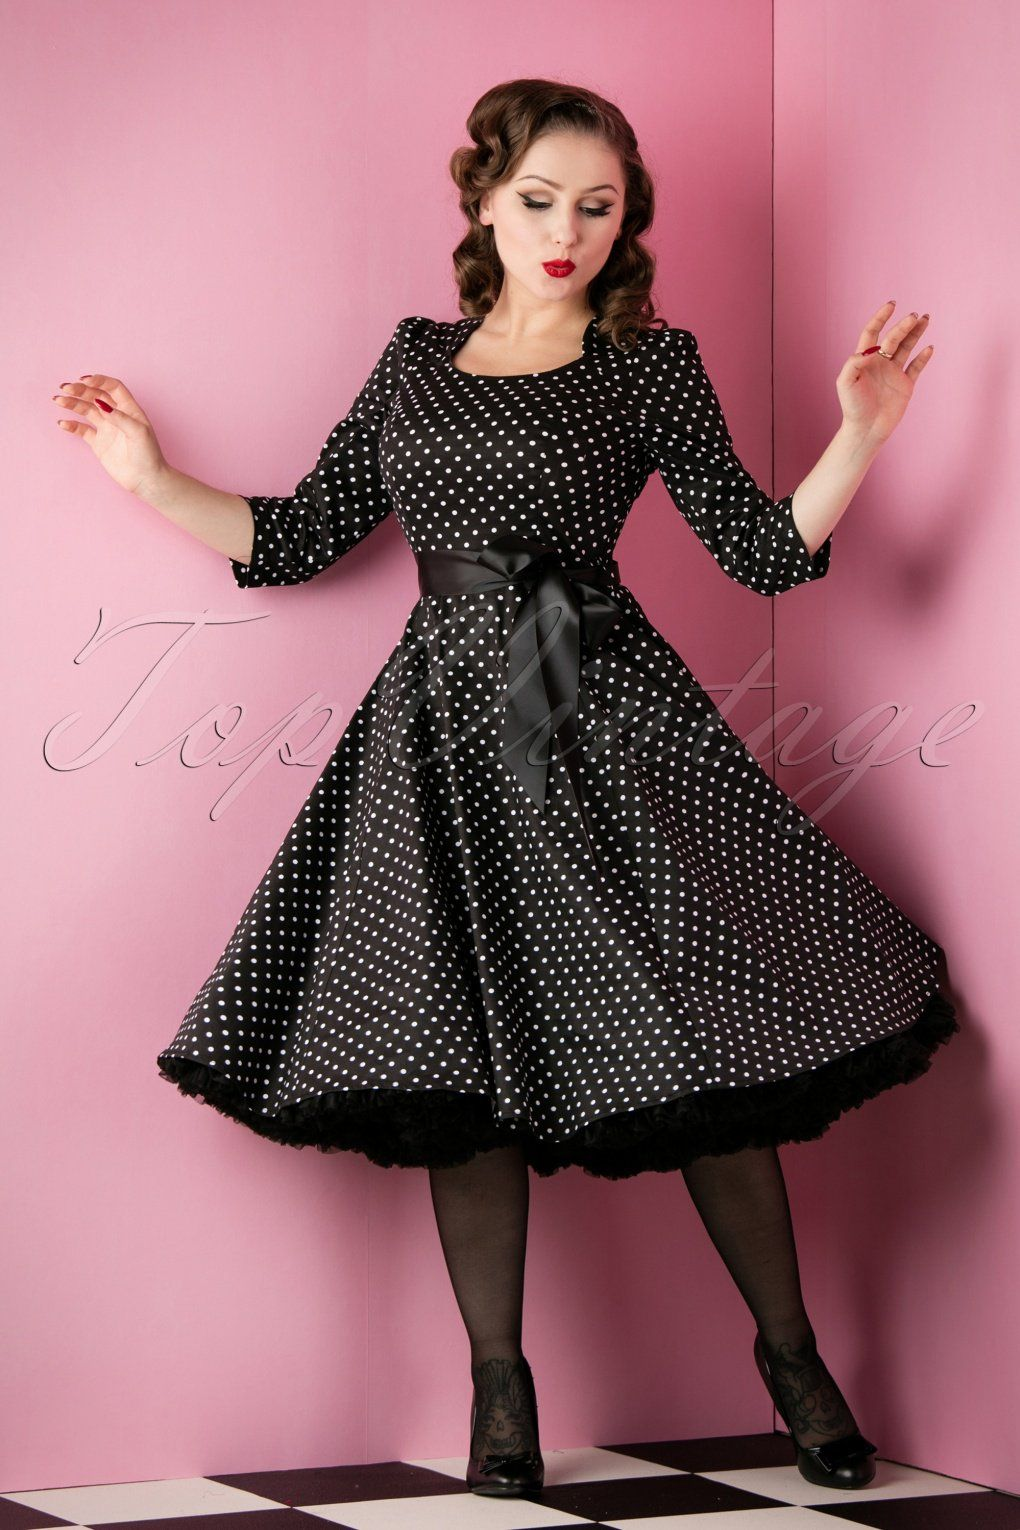 f1bffa46fb404 50s Sofie Polkadot Swing Dress in Black And White | Vintage Style ...